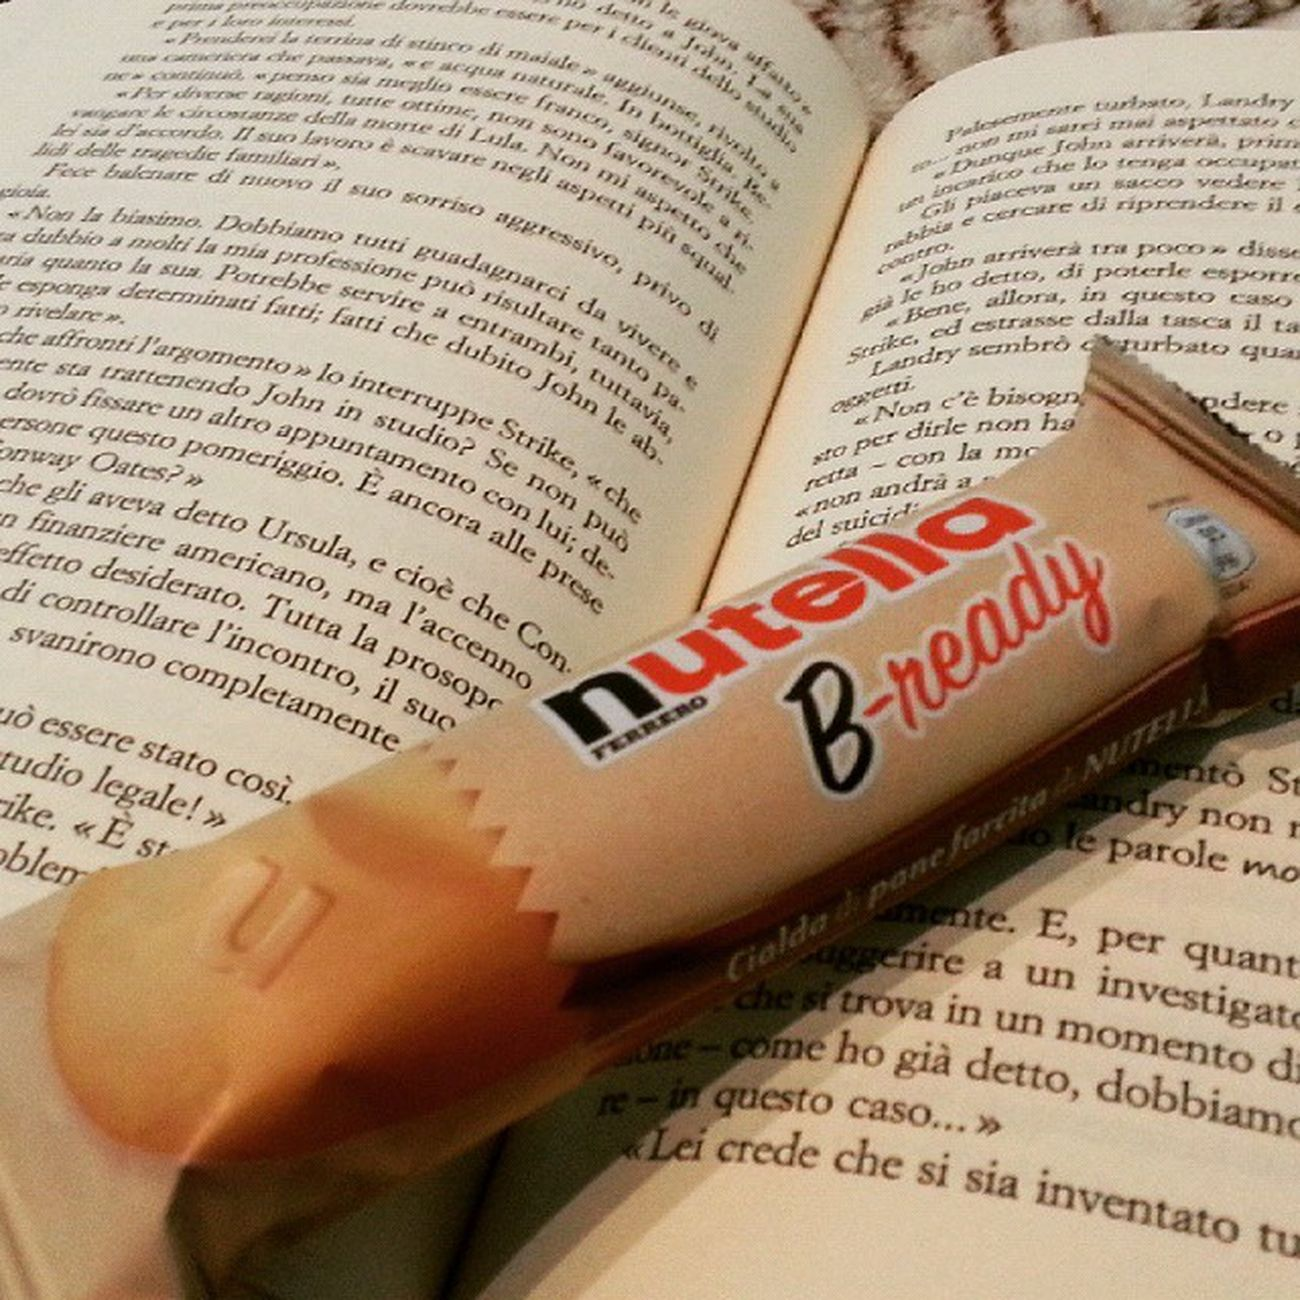 Drugs! Bookworm Books Sunday Relax Ilrichiamodelcuculo Nutella Nutellabready Drugs Picoftheday Books Reading Read Readingchallenge TheCuckoosCalling Jkrowling RobertGalbraith